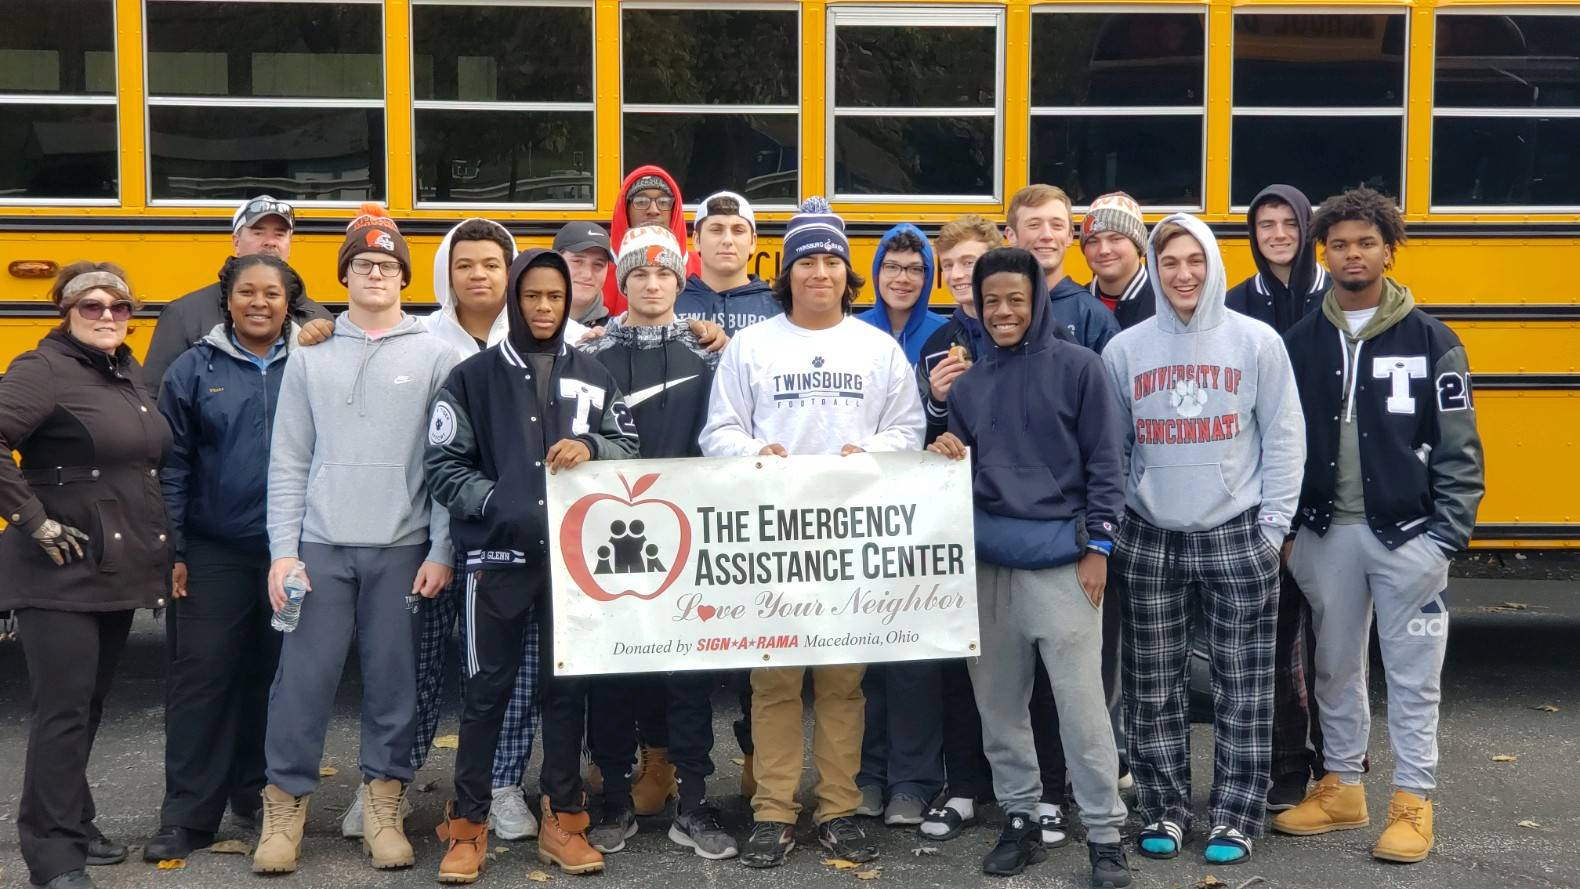 students standing in front of bus holding a sign which says The Emergency Assistance Center